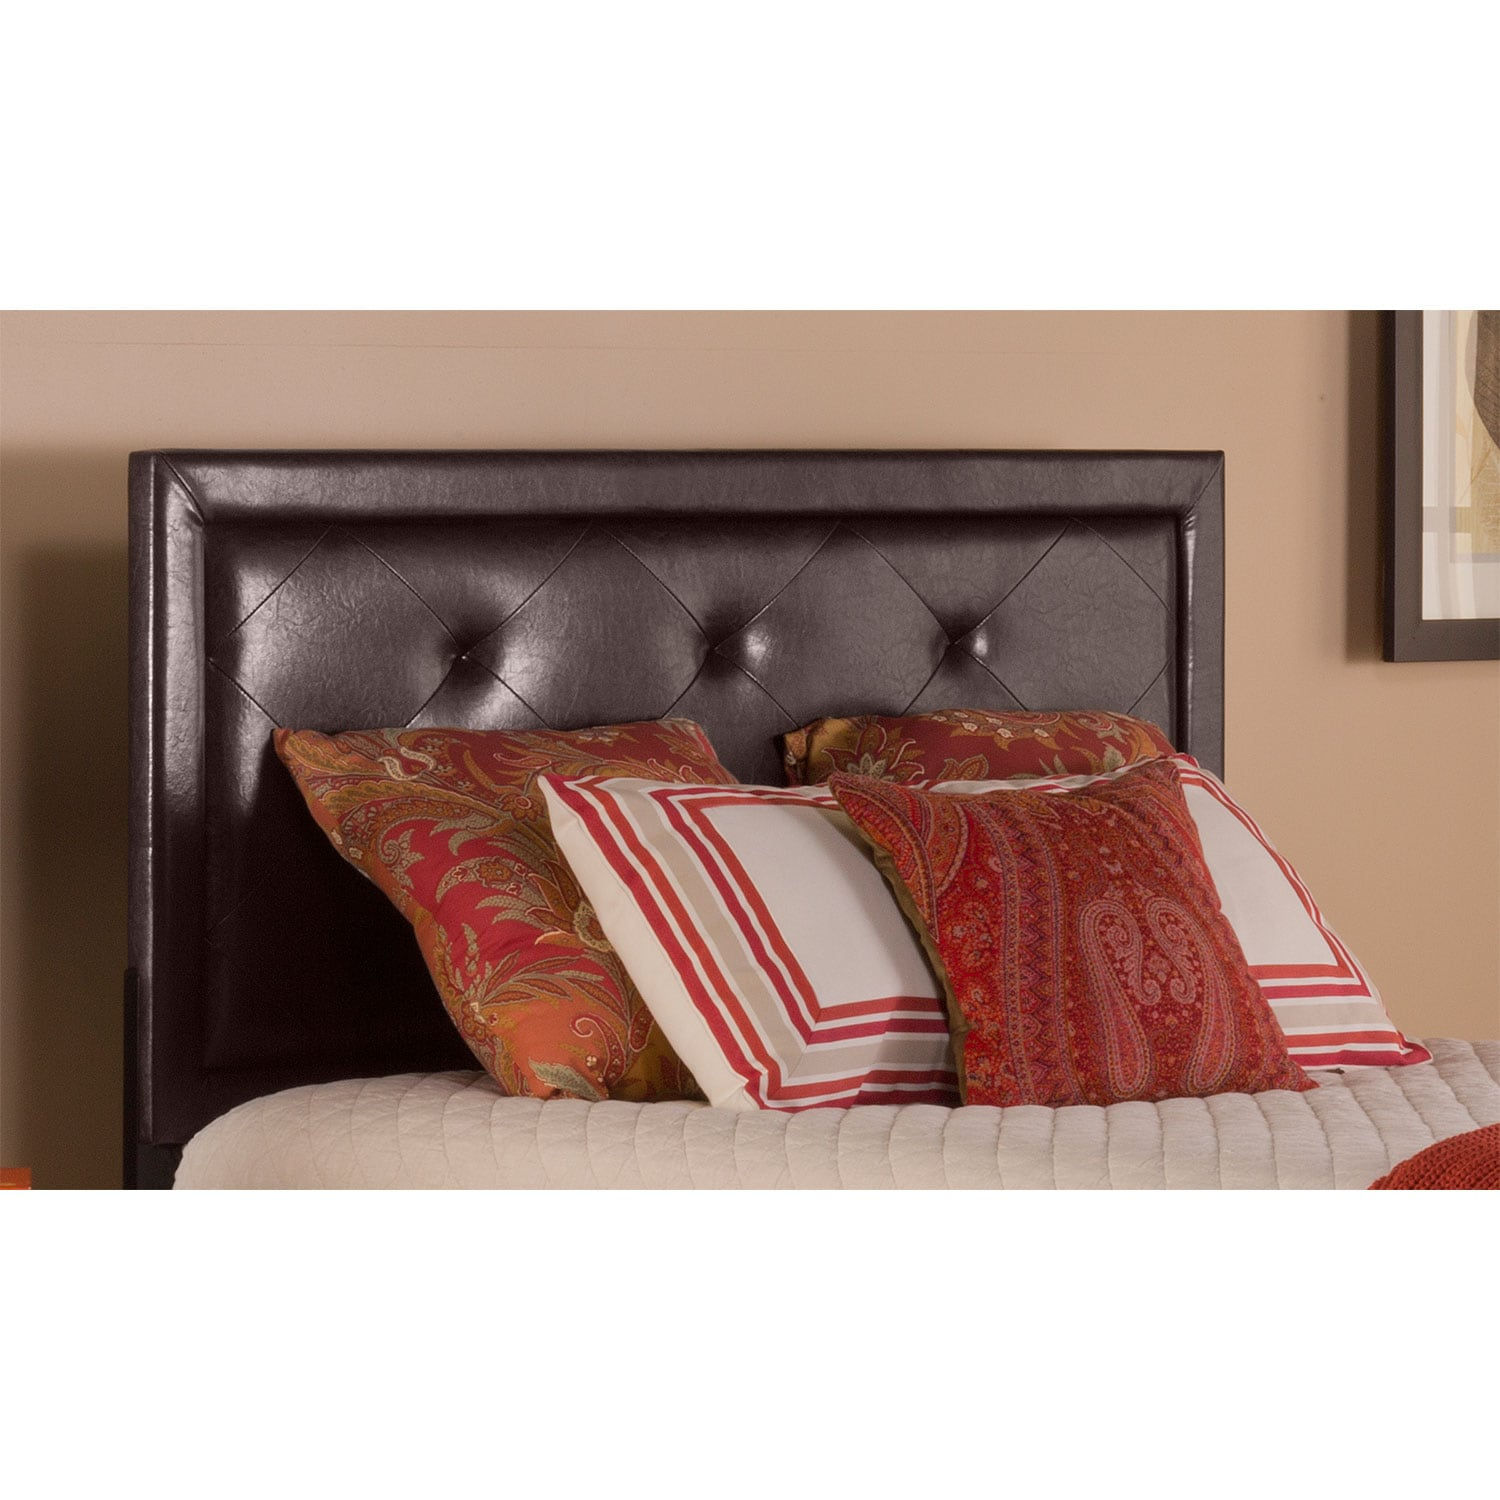 Bedroom Furniture - Becker Headboard